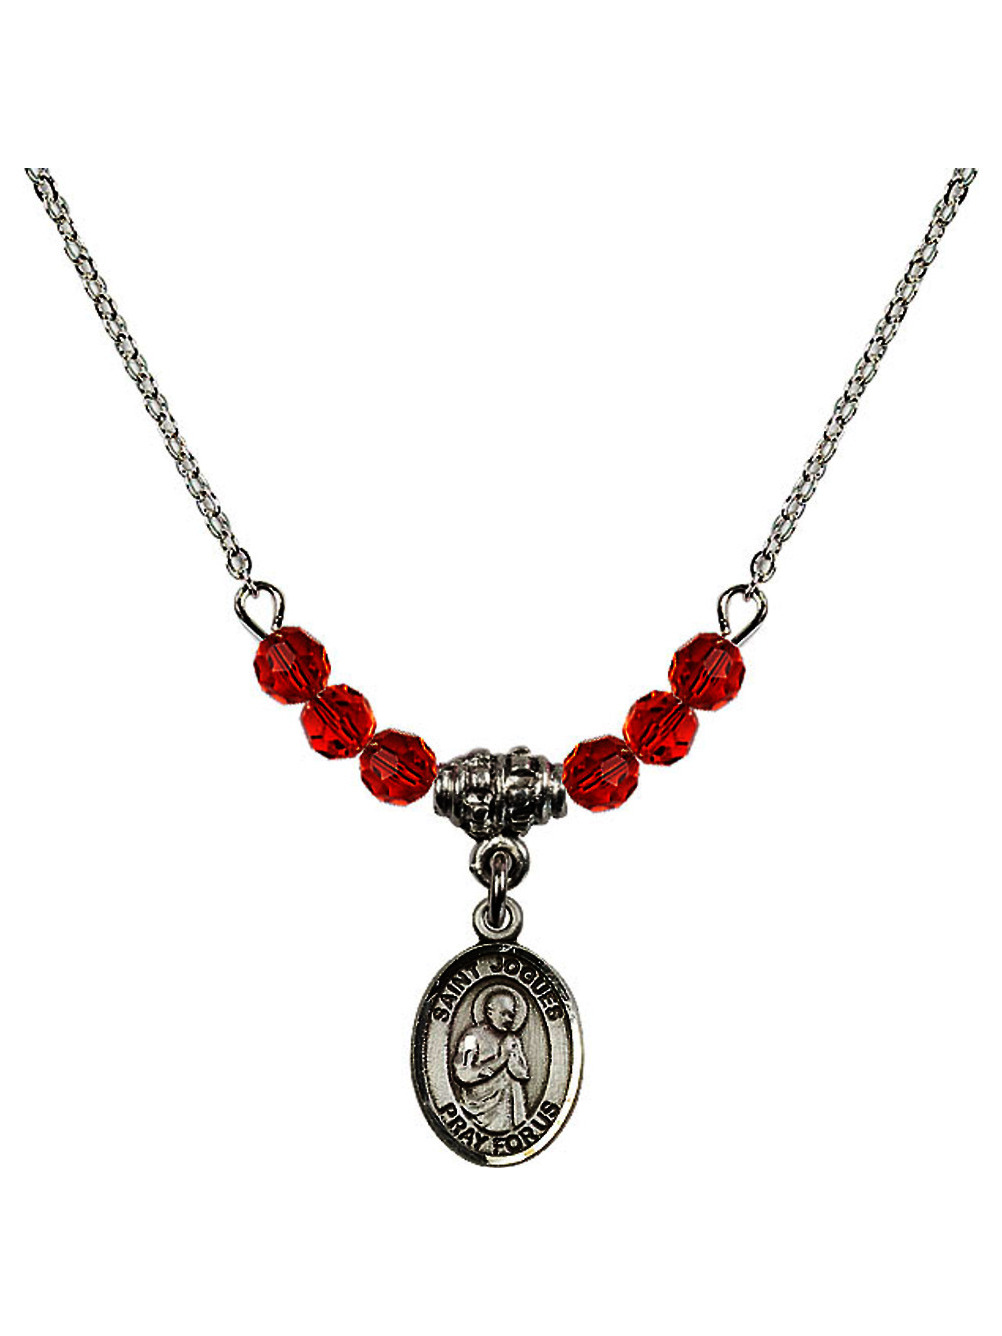 18-Inch Rhodium Plated Necklace with 6mm Sapphire Birthstone Beads and Sterling Silver Saint John Baptist de la Salle Charm.